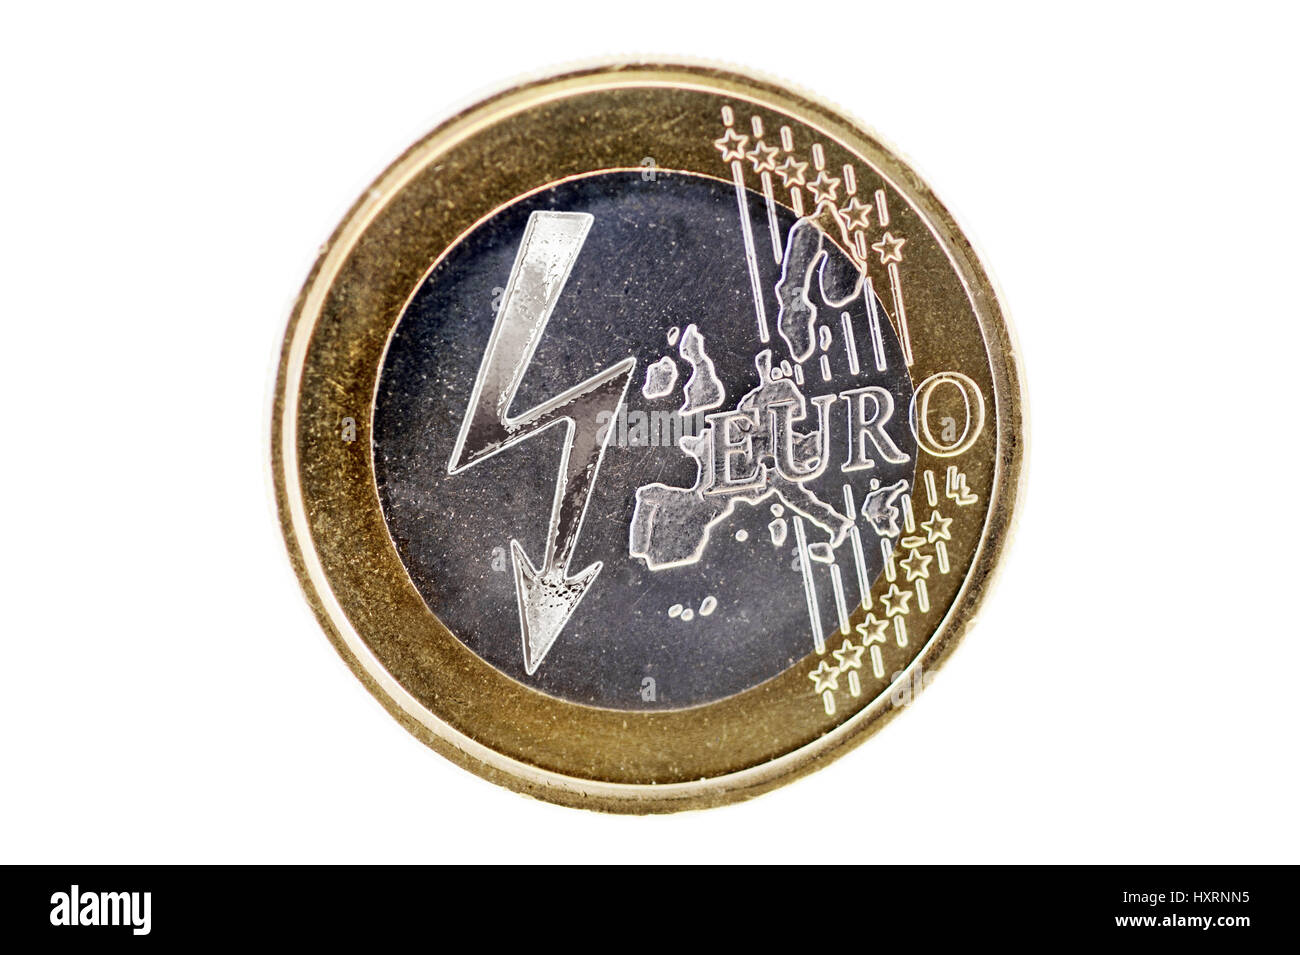 Euro-coin one with stream arrow, symbolic photo rising stream costs, Ein-Euro-Münze mit Strompfeil, Symbolfoto - Stock Image